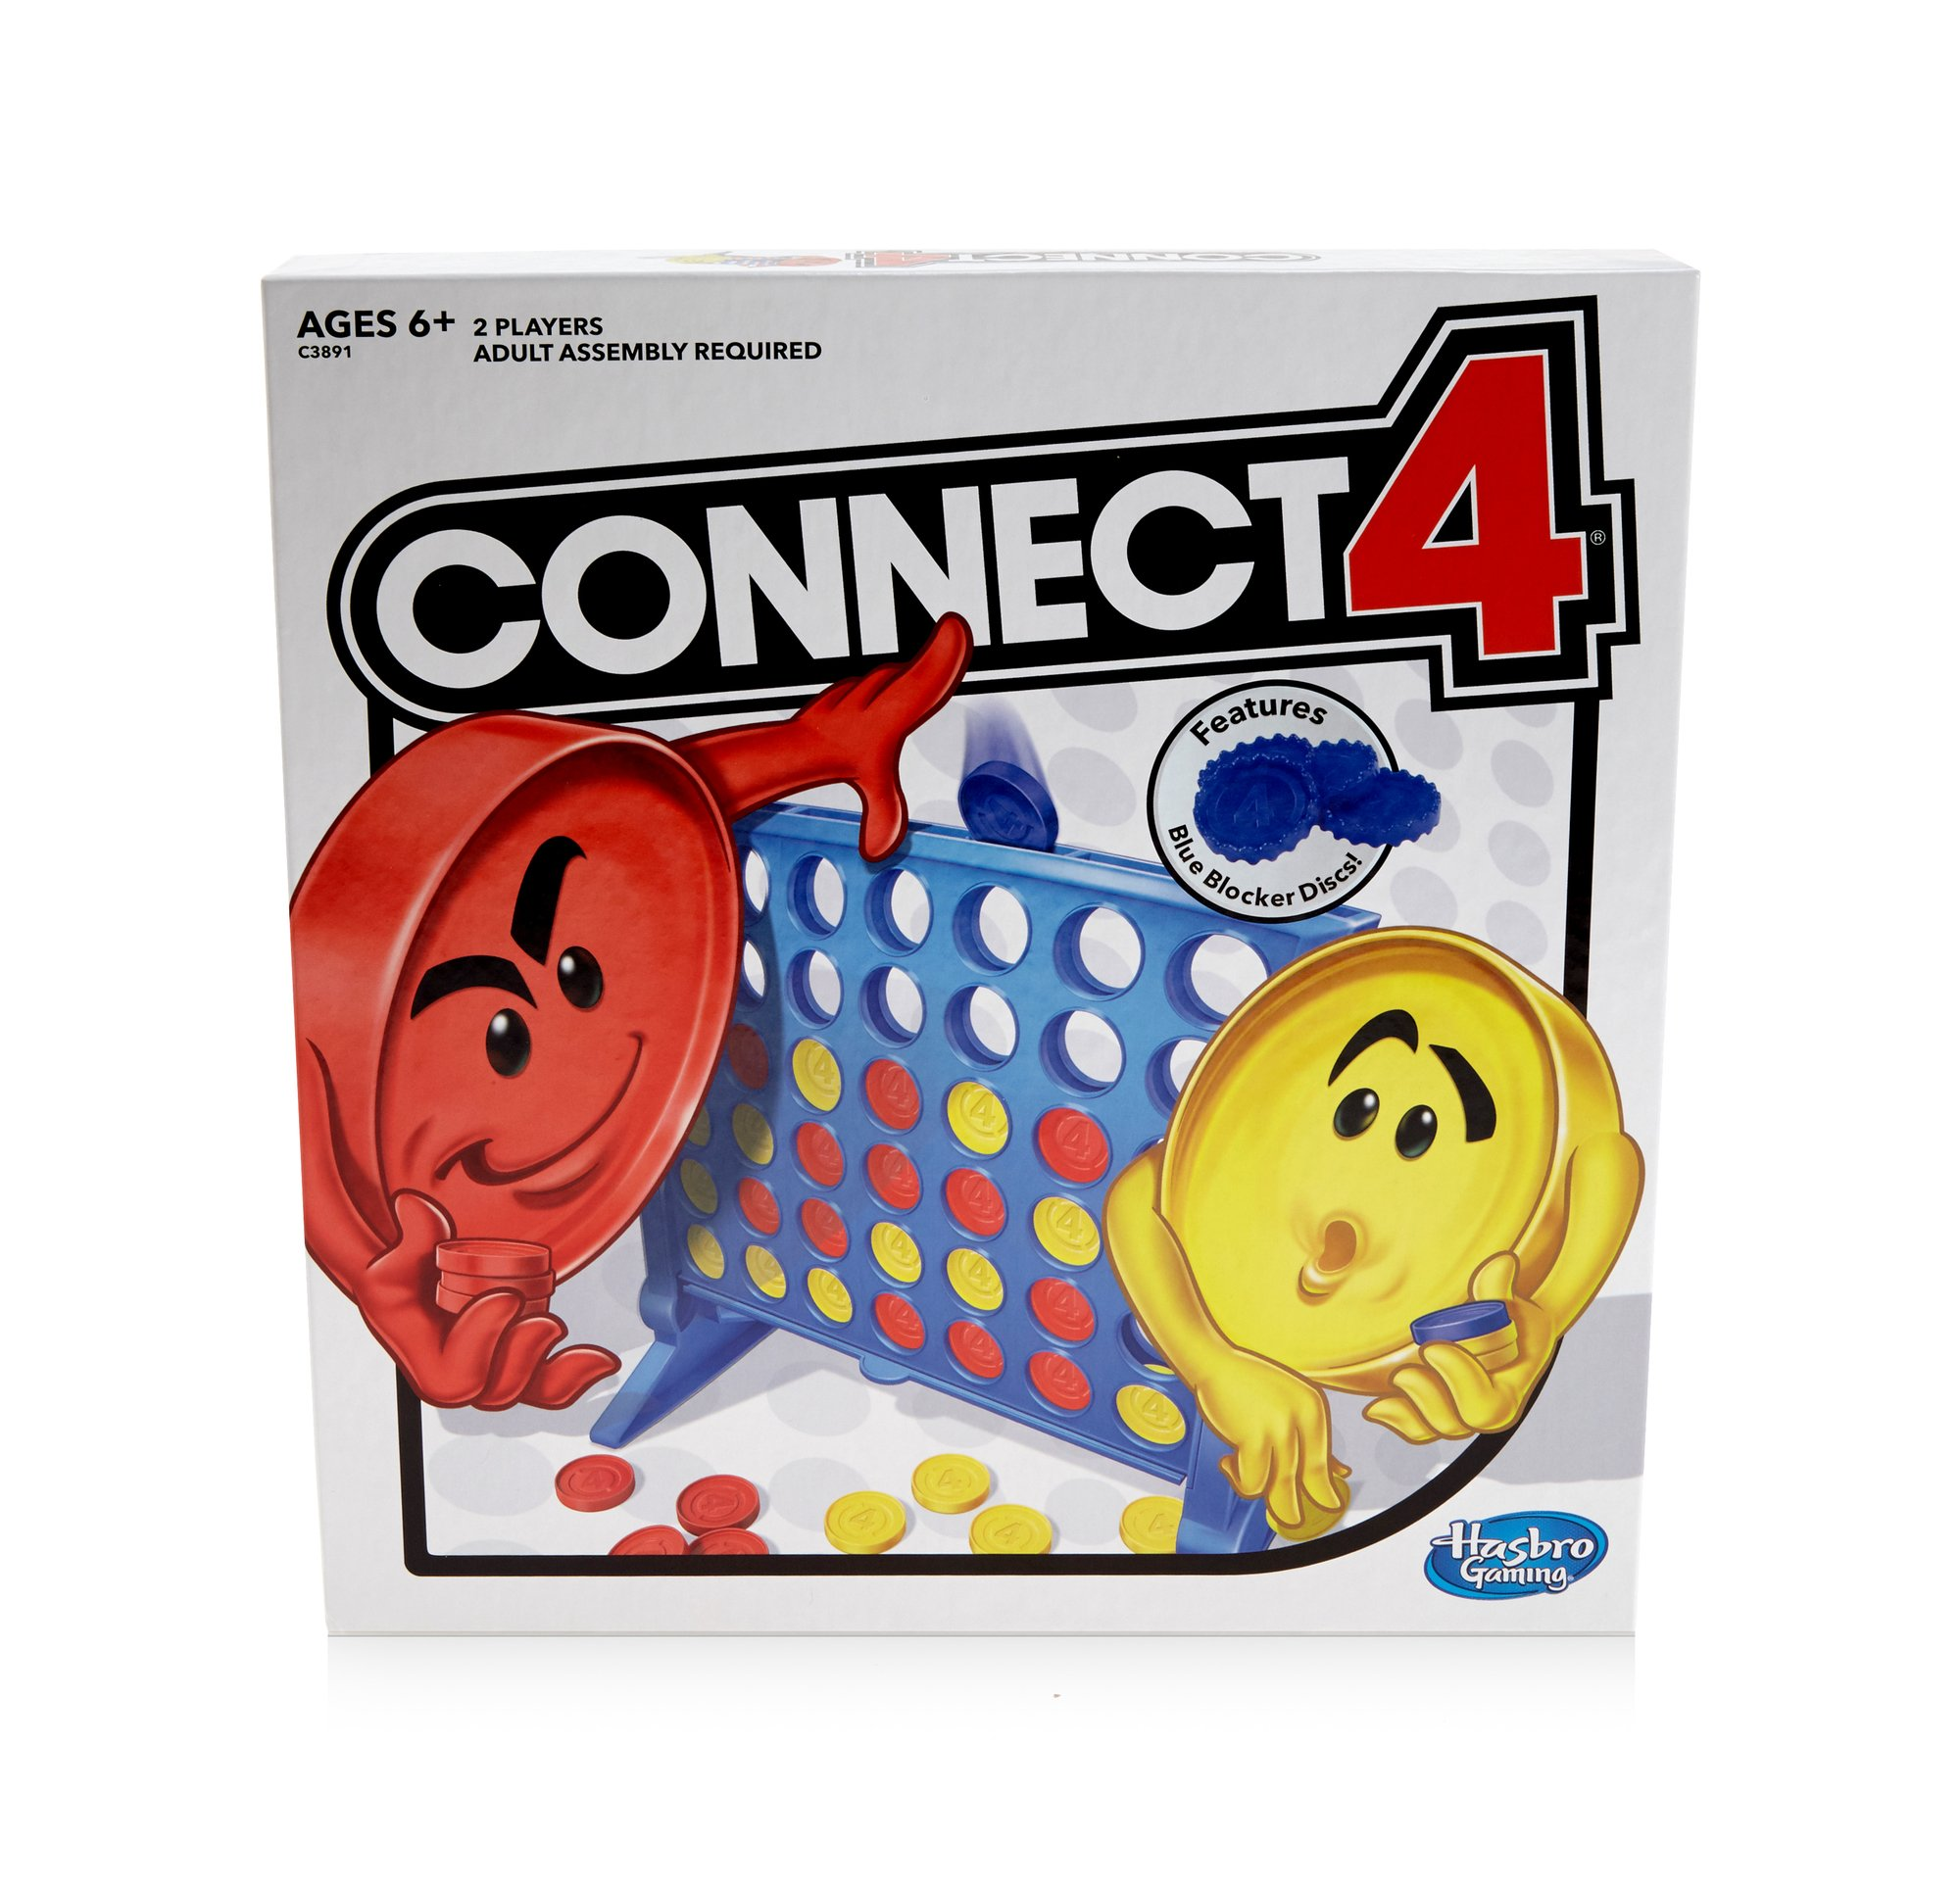 Connect 4 Strategy Board Game for Ages 6 and Up (Amazon Exclusive) by Hasbro Gaming